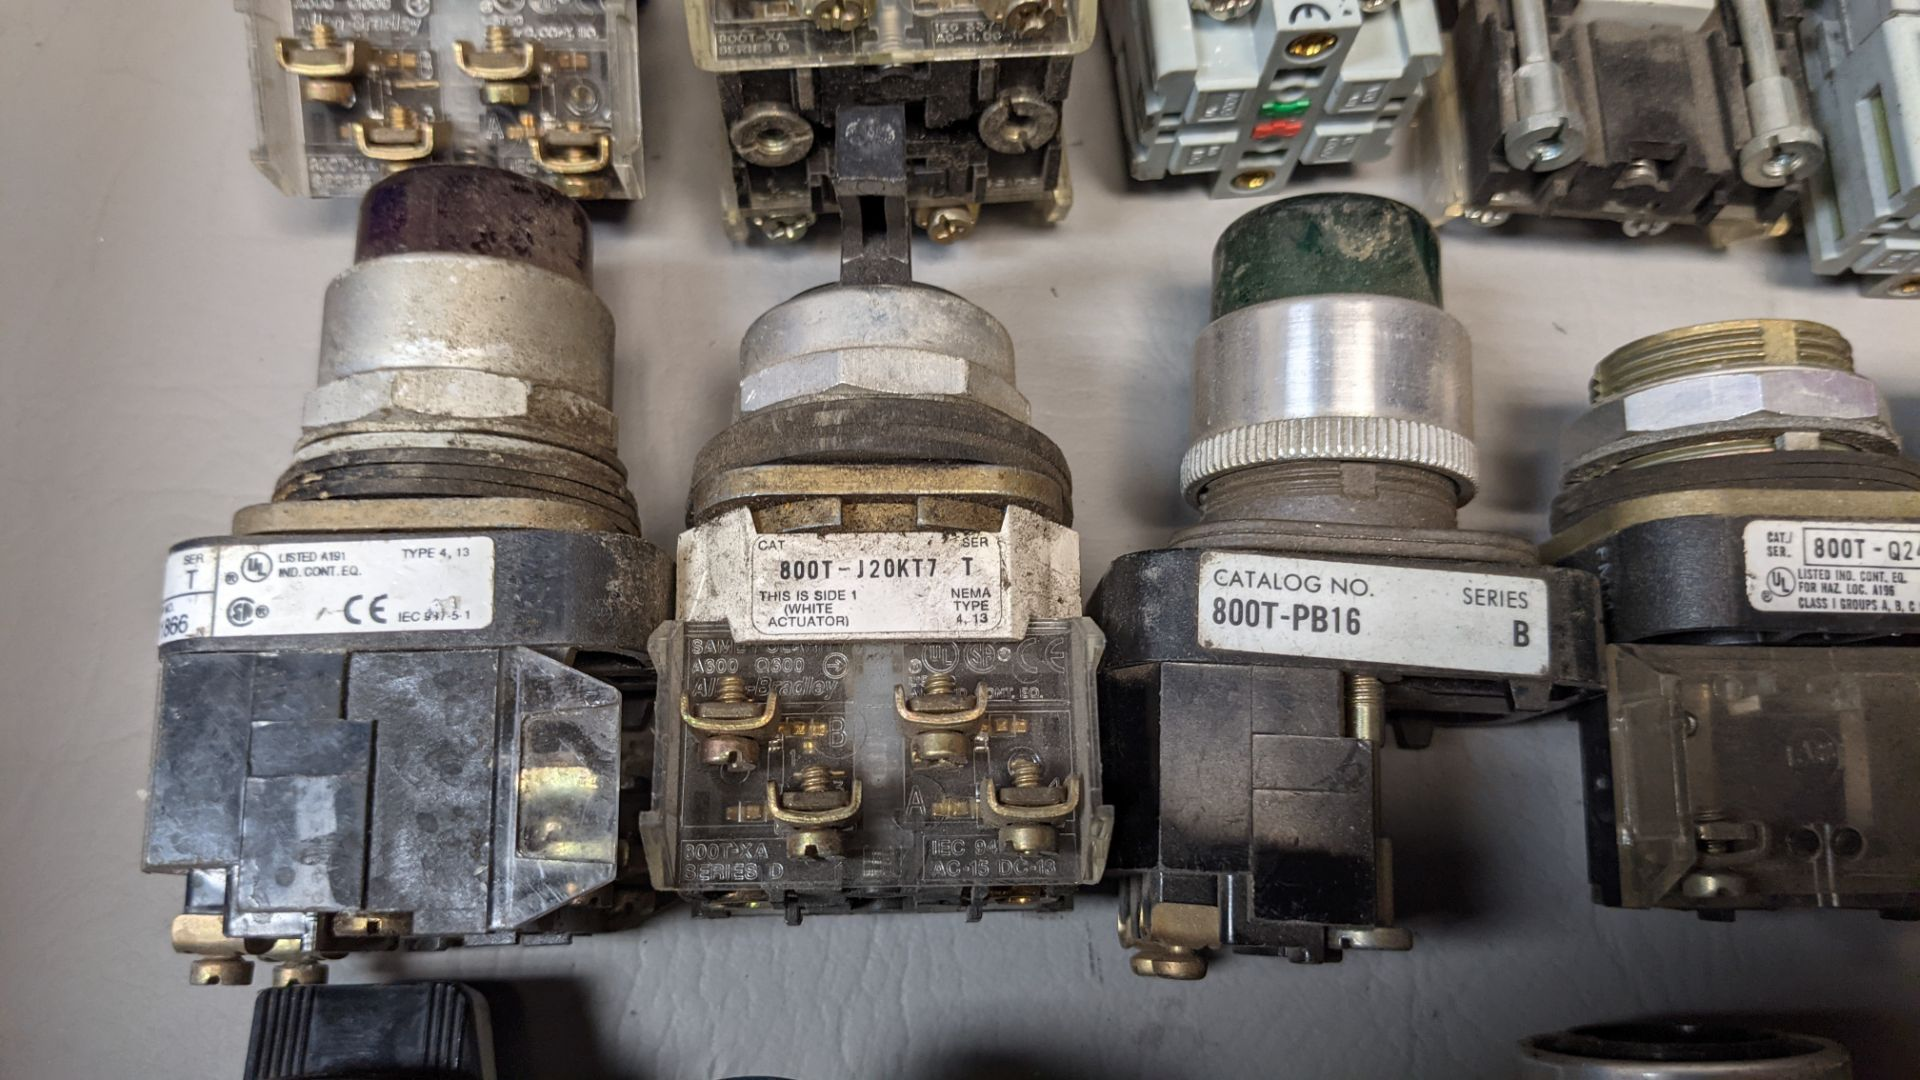 LOT OF PUSHBUTTONS, PILOT LIGHTS, SELECTOR SWITCHES - Image 4 of 7